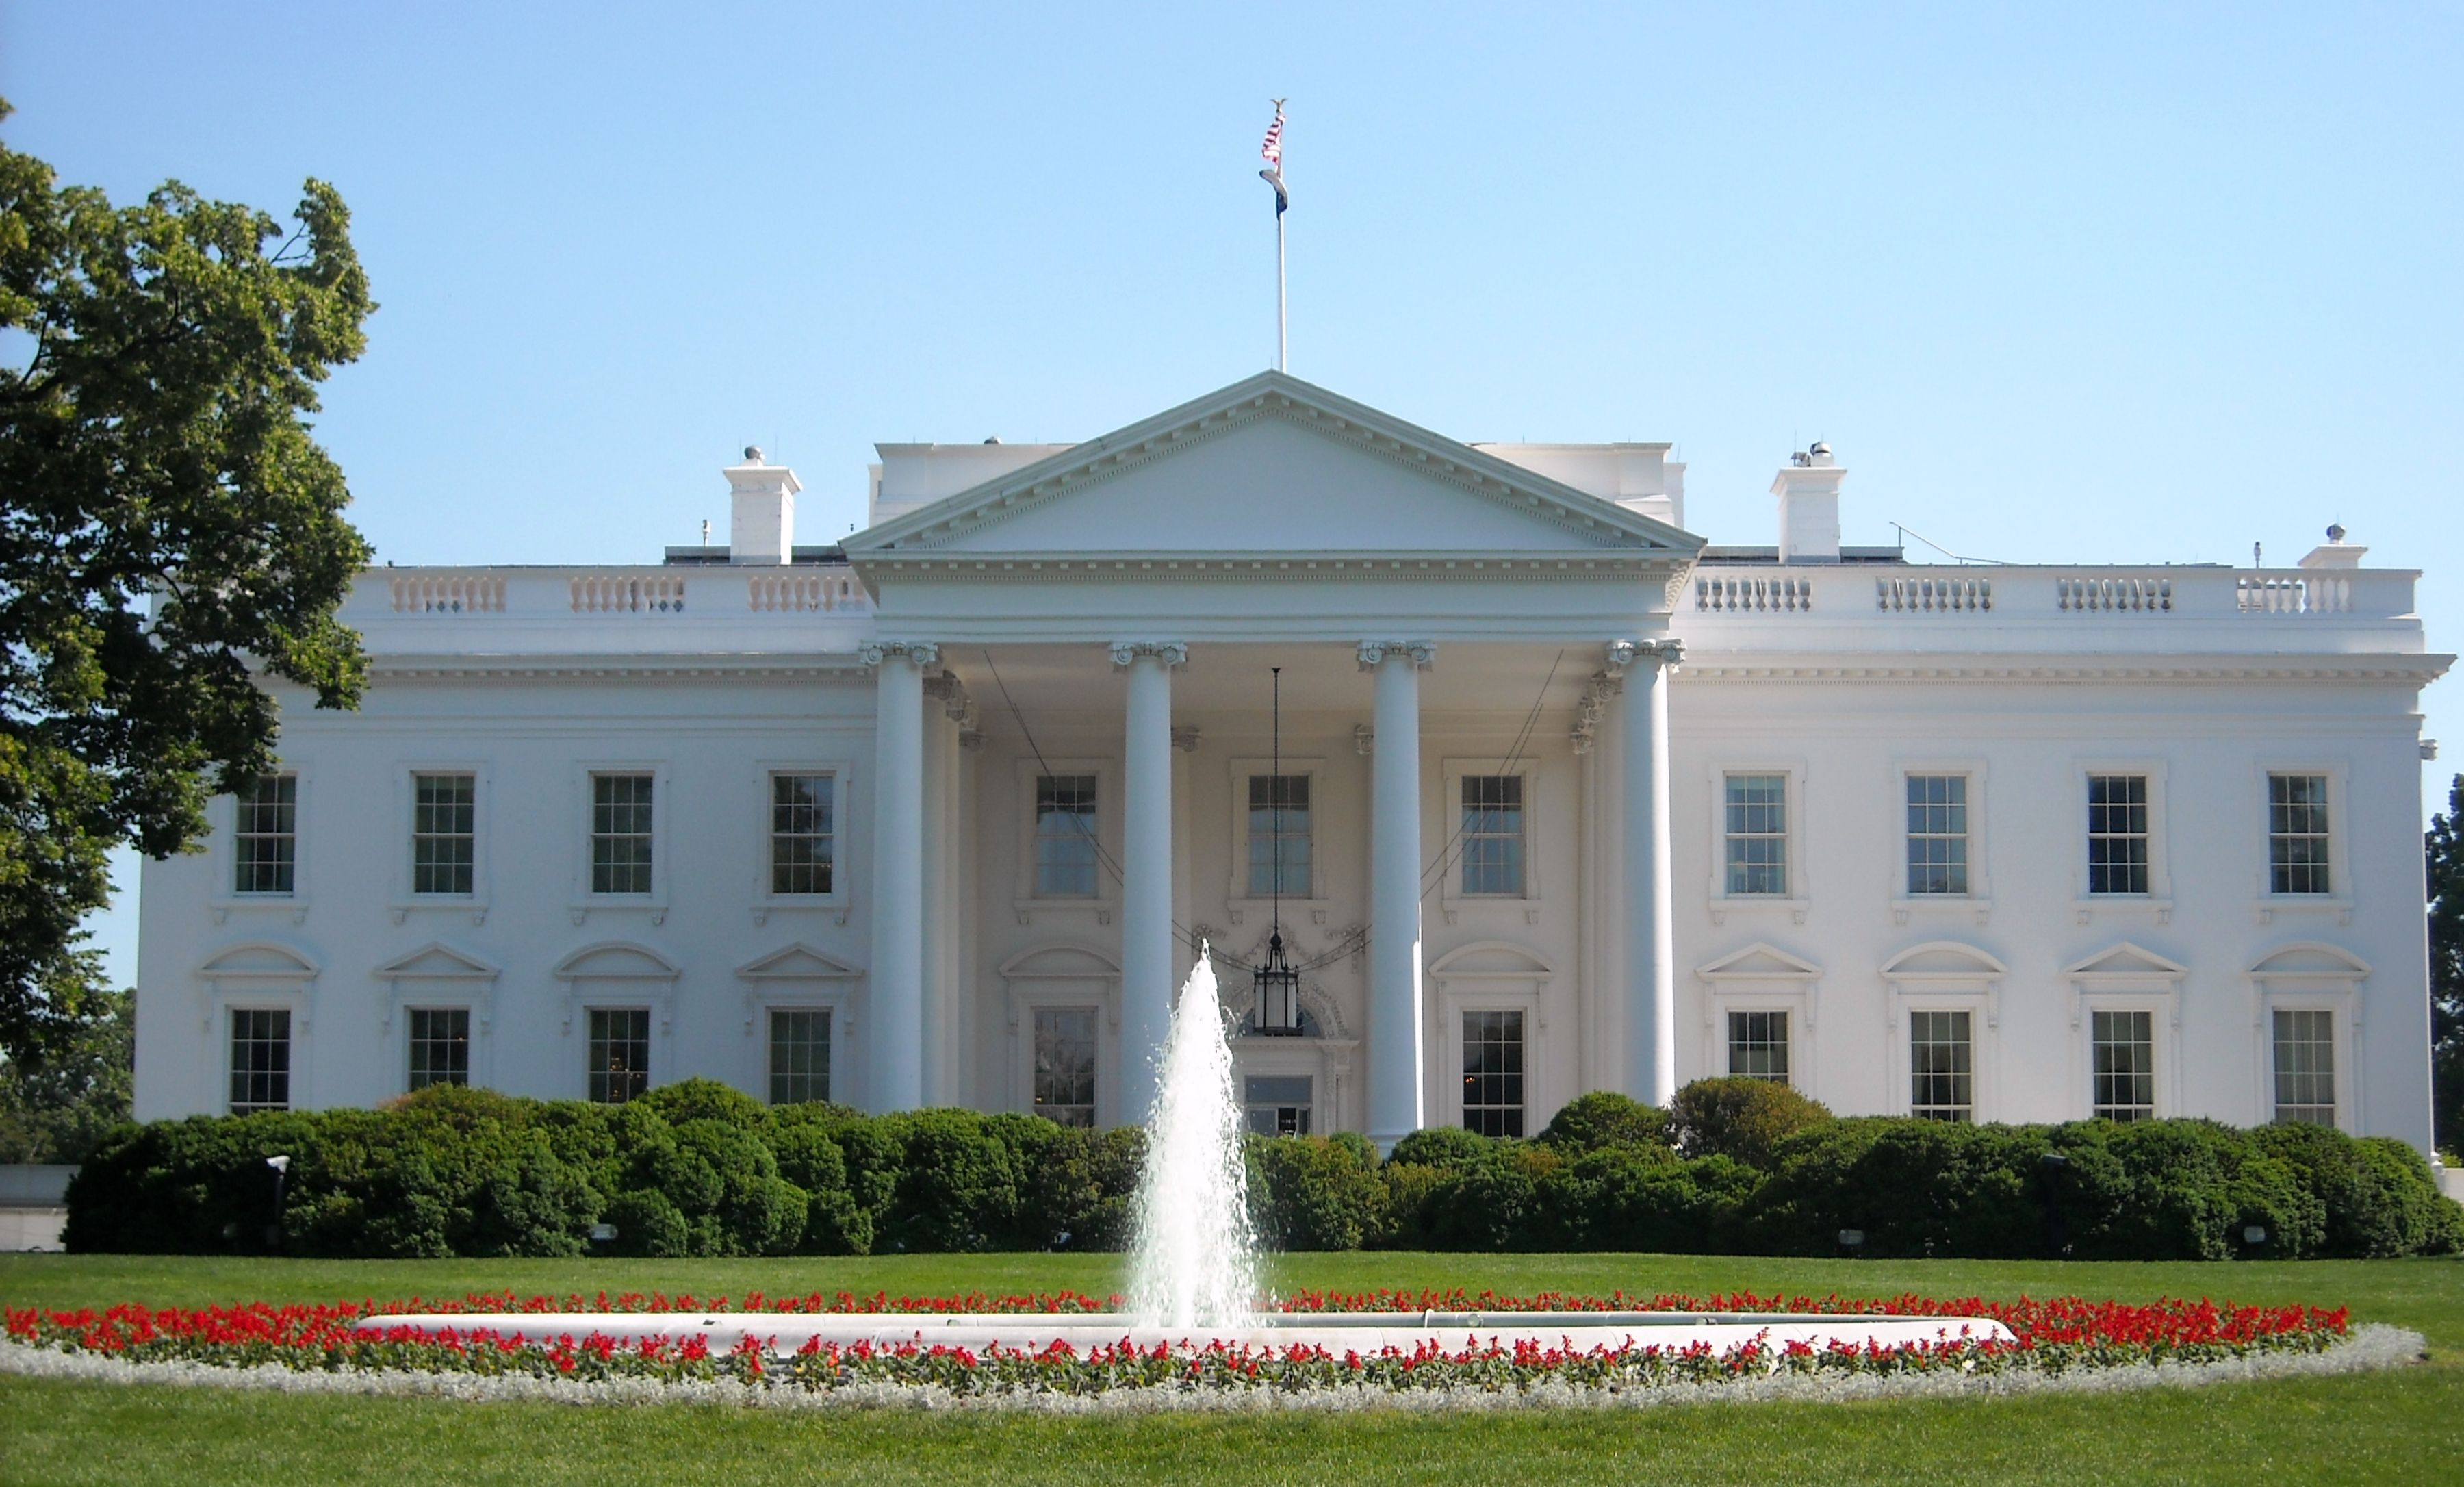 The White House - The President of the United States